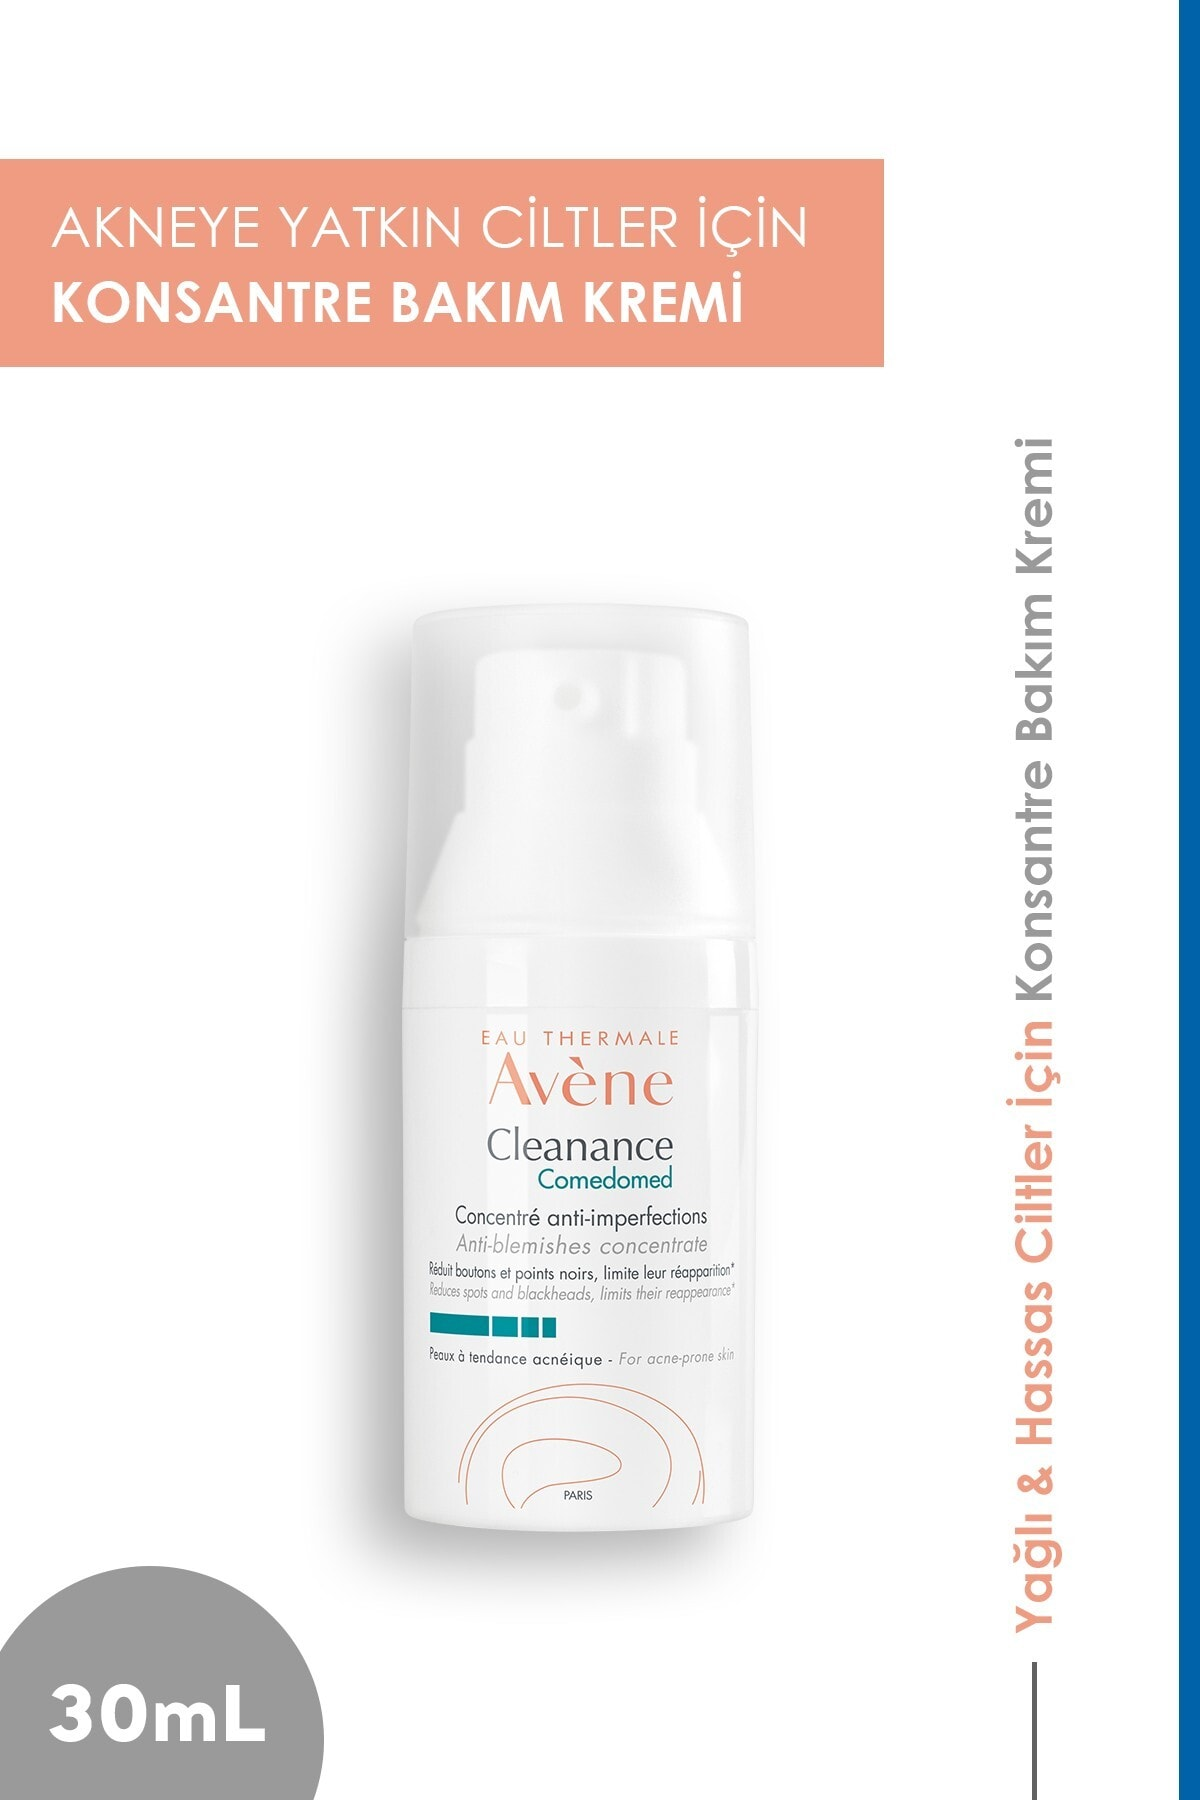 Avene Cleanance Comedomed Anti-blemishes Concentrate 30 Ml 00604 1